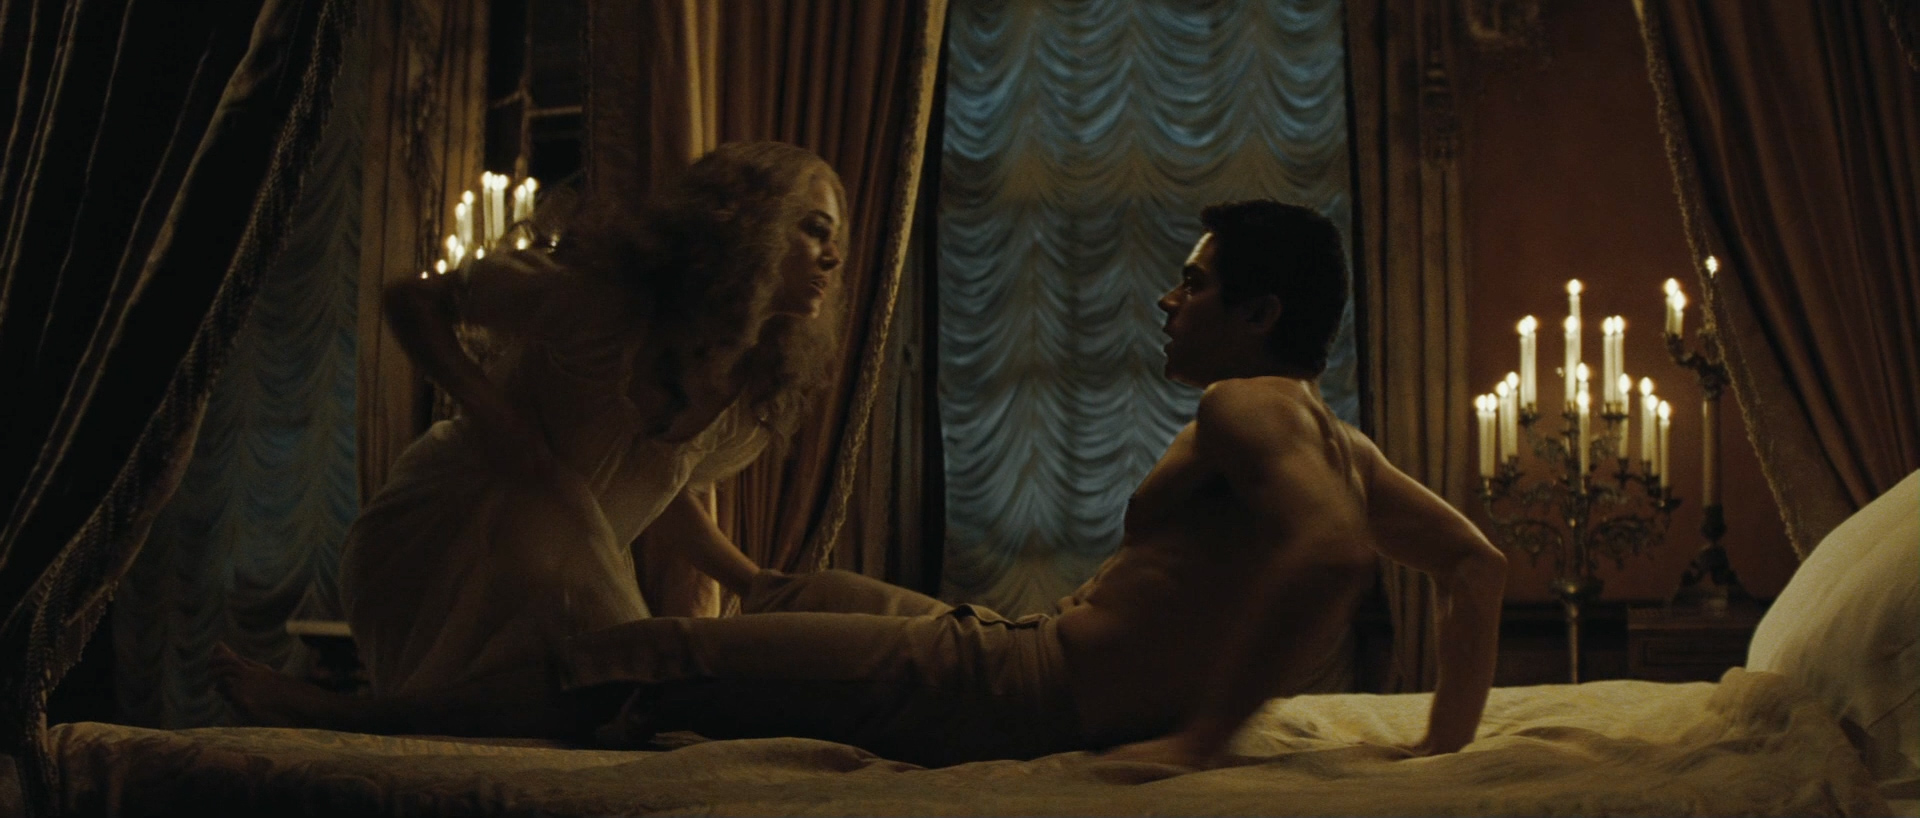 keira knightley nude in duchess